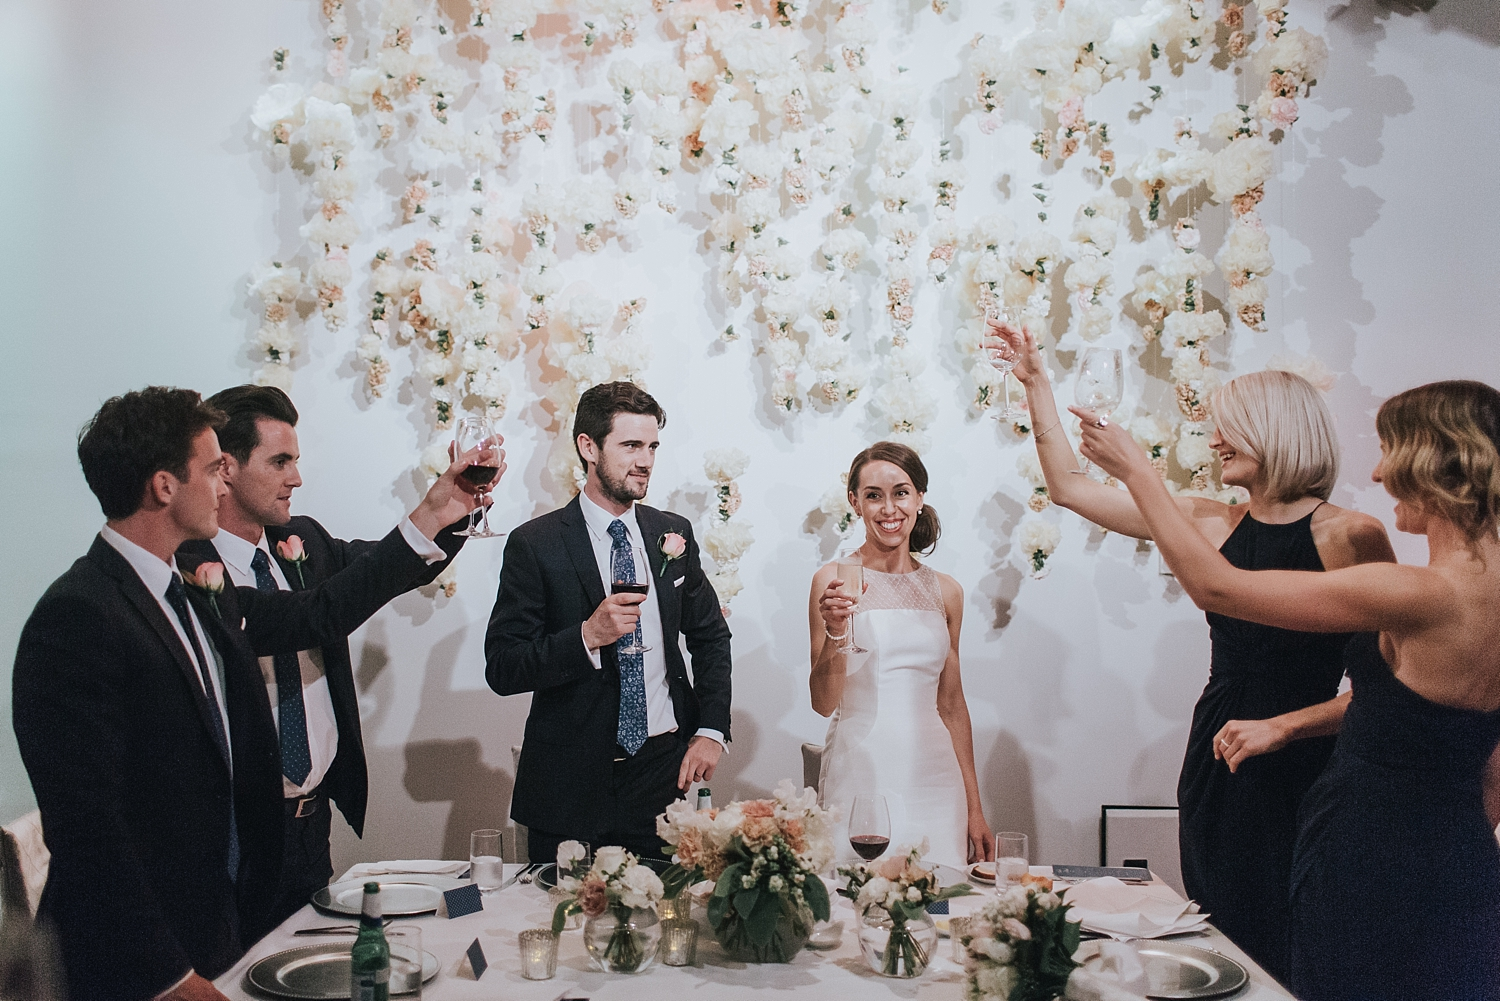 a toast for the bride and groom in sydney